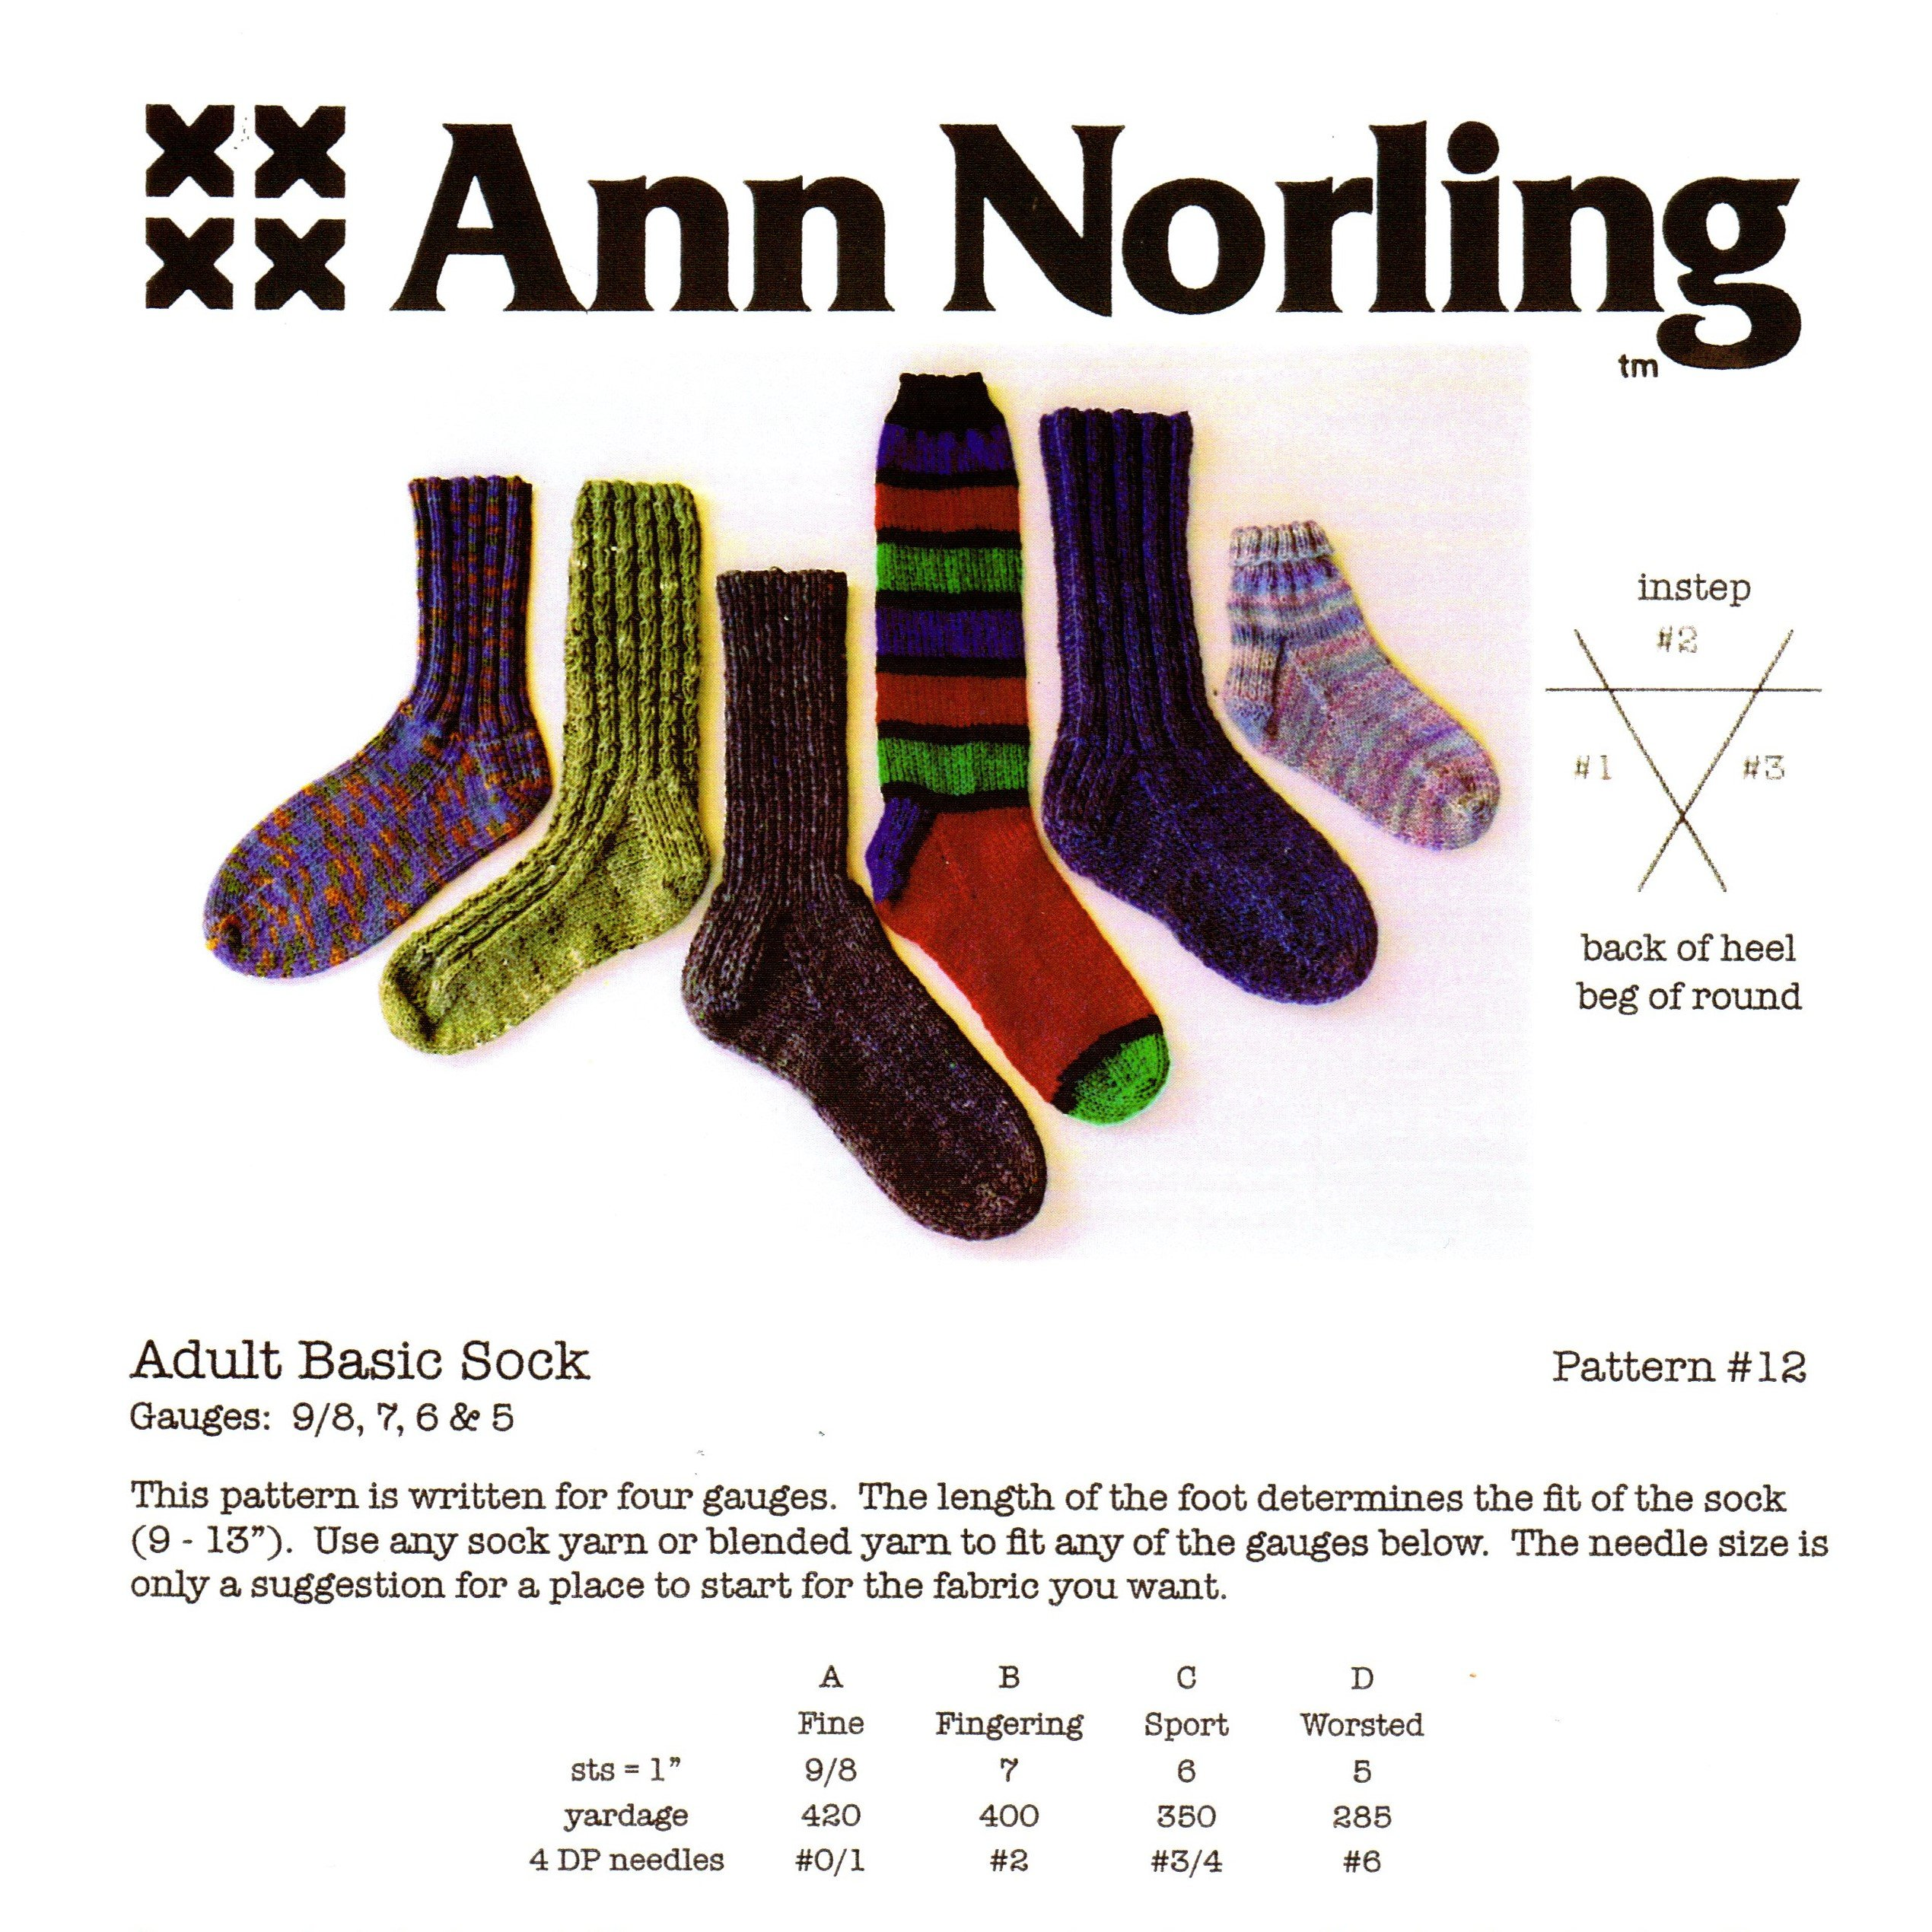 Ann Norling: Adult Basic- Socks- Knitting Pattern for 3 Gauges, Pattern No. 12 Pamphlet B000R2YA5C